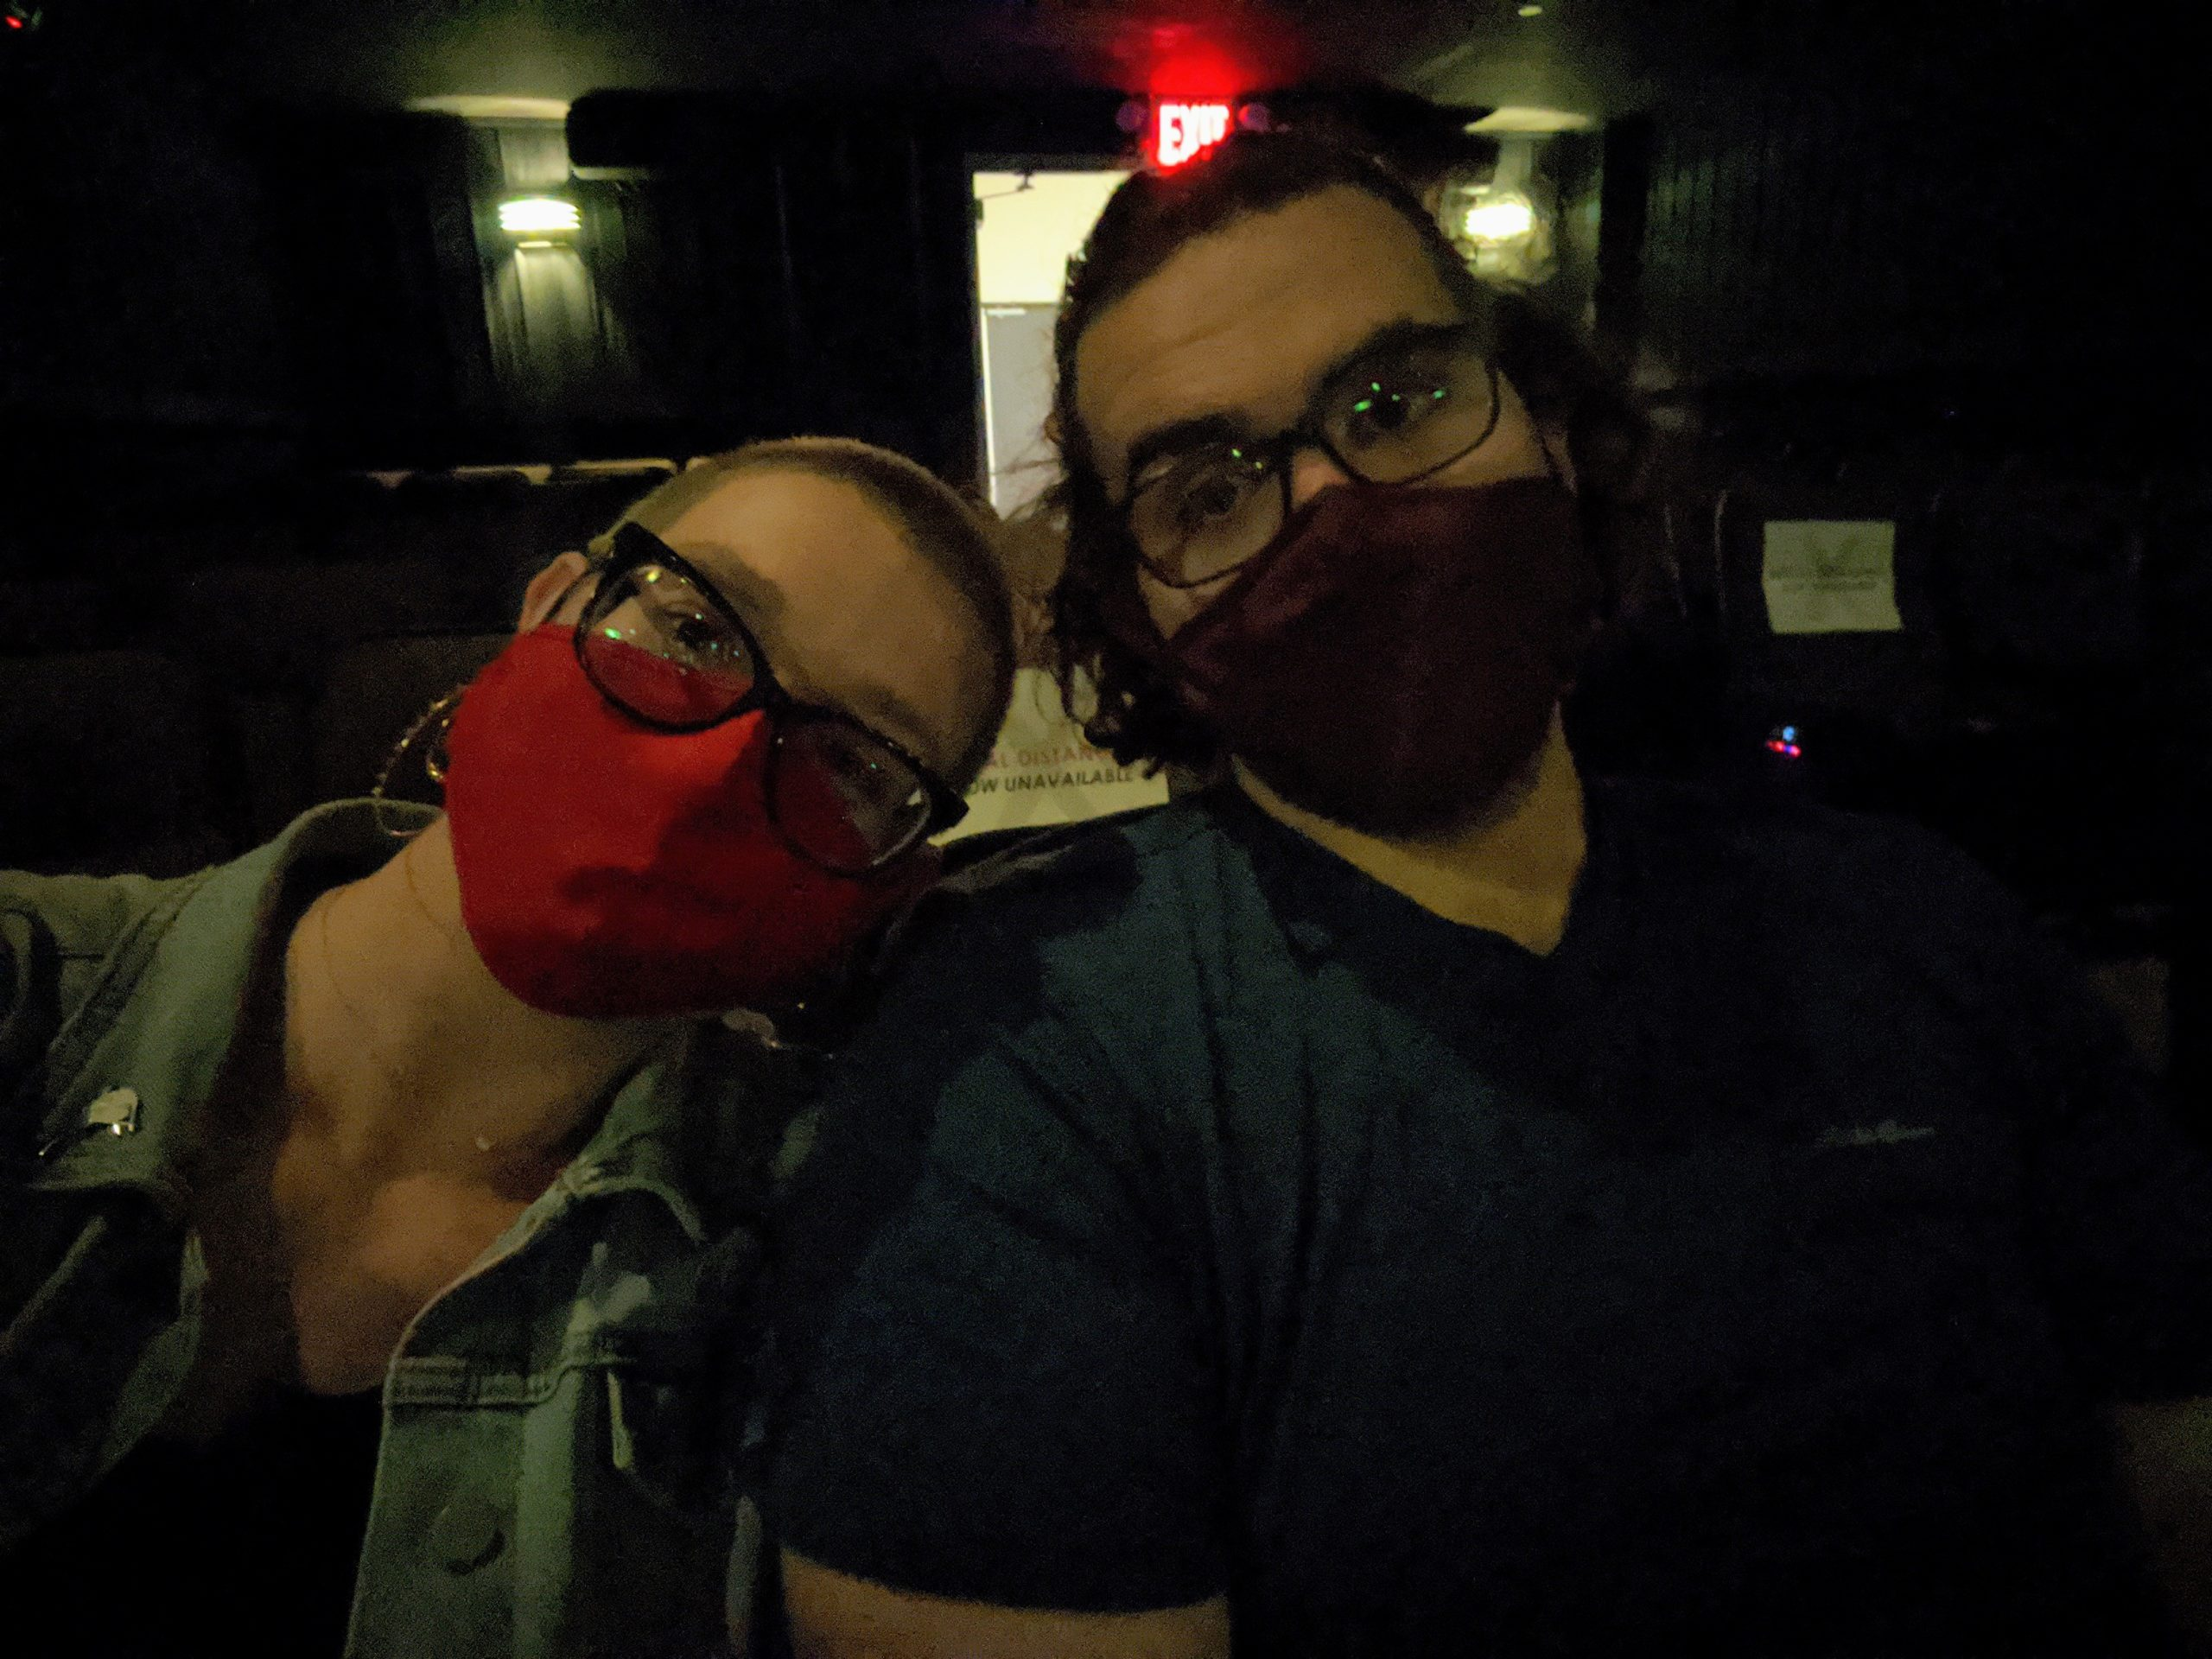 Selfie of Leah and Keith sitting in a dark movie theater